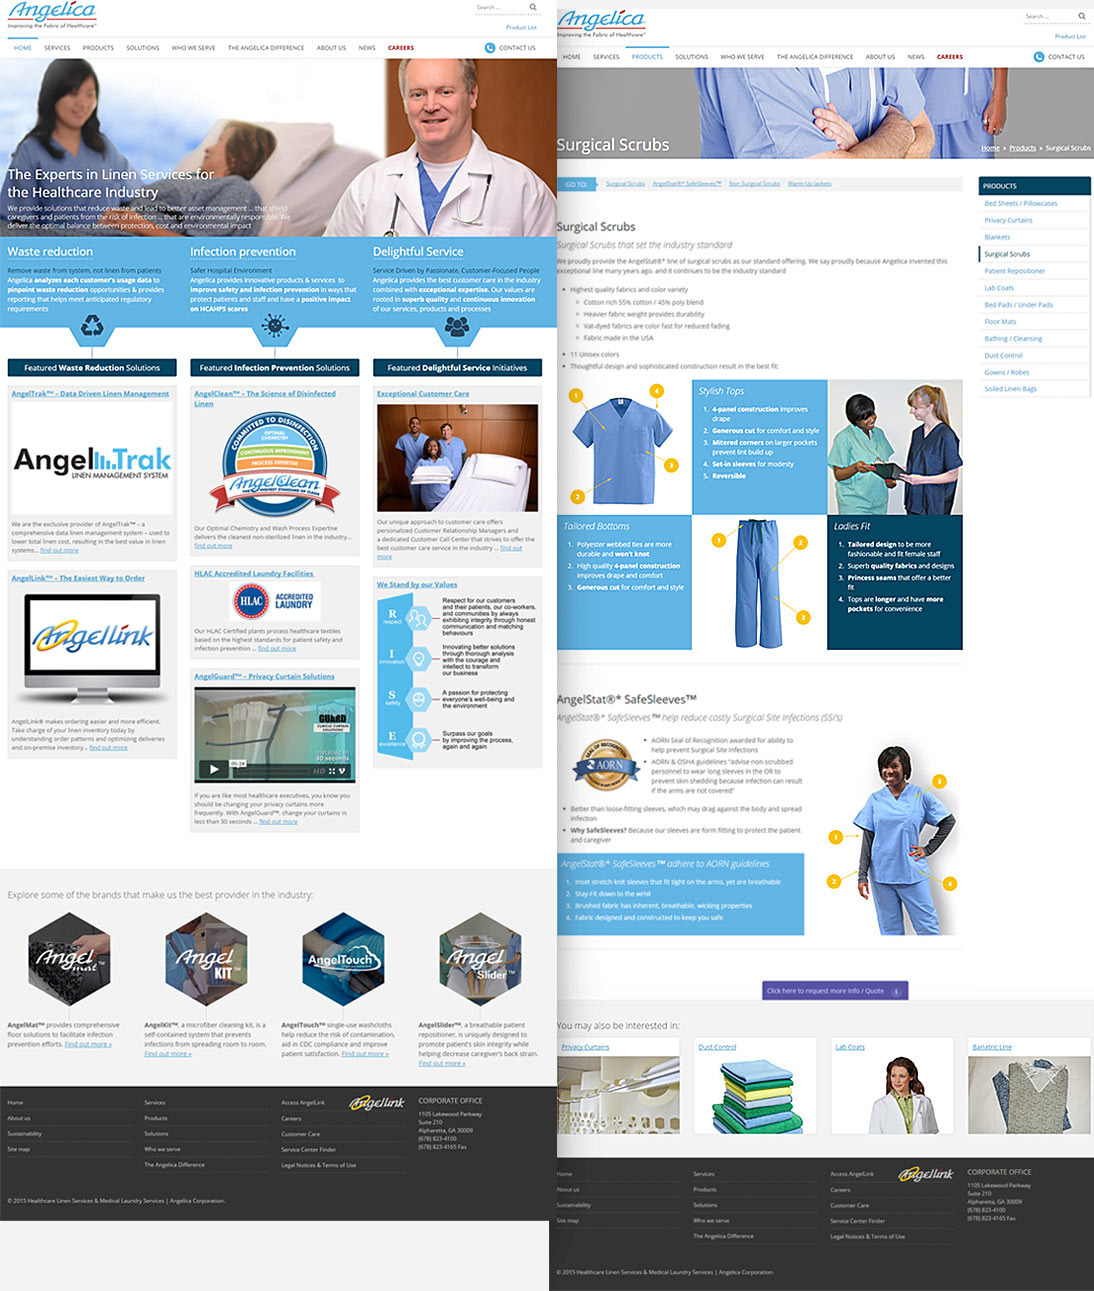 Full-length home page & internal page of angelica.com